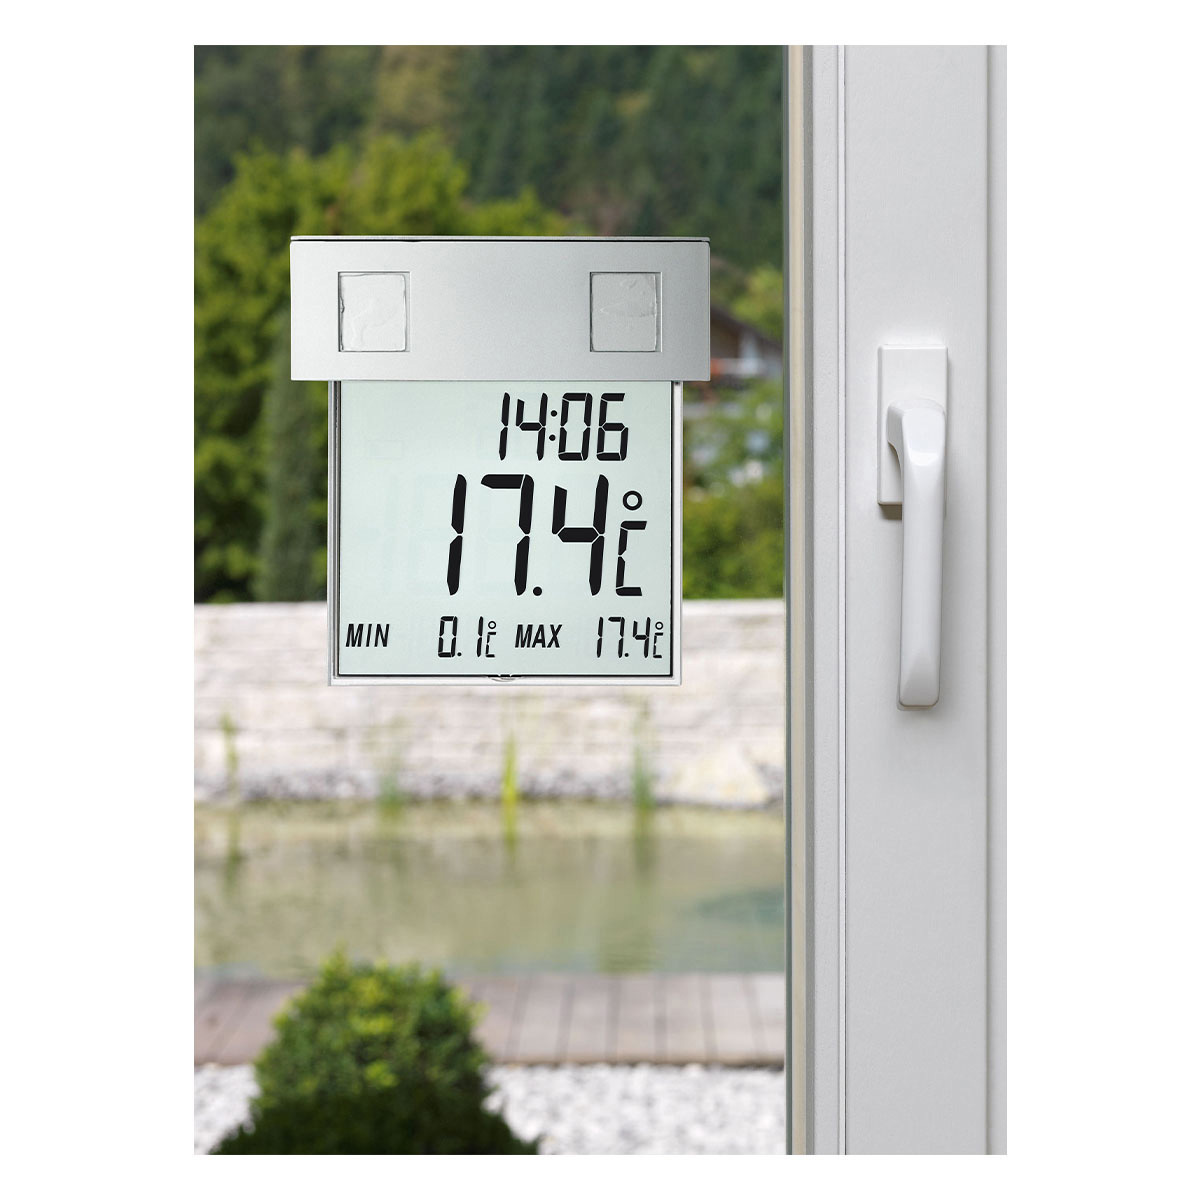 30-1035-digitales-fensterthermometer-mit-solarbeleuchtung-vision-solar-anwendung1-1200x1200px.jpg